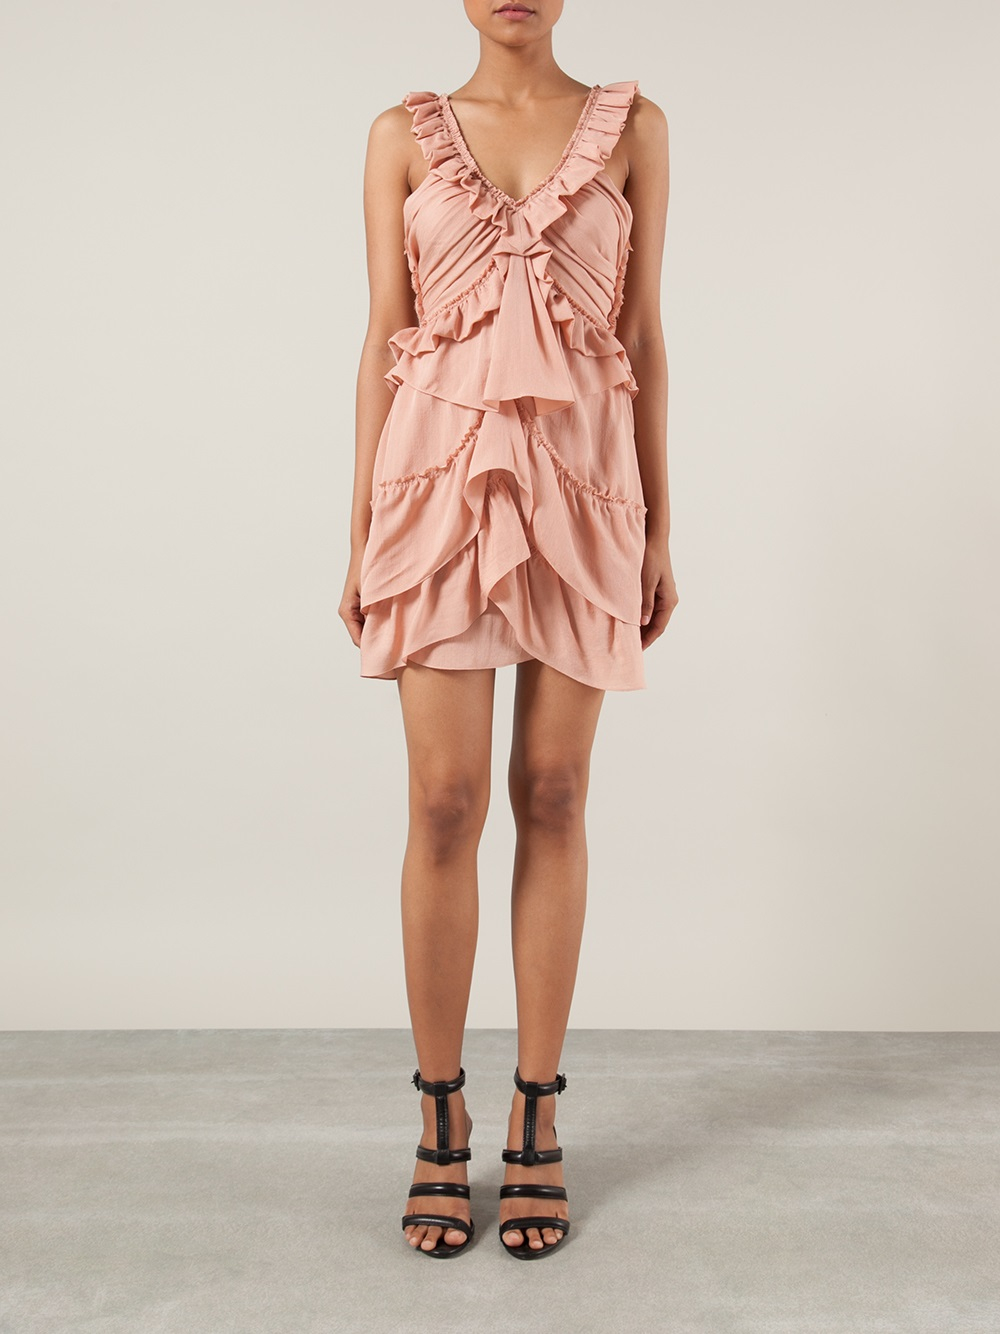 Lyst  Isabel Marant Ruffle Dress in Pink